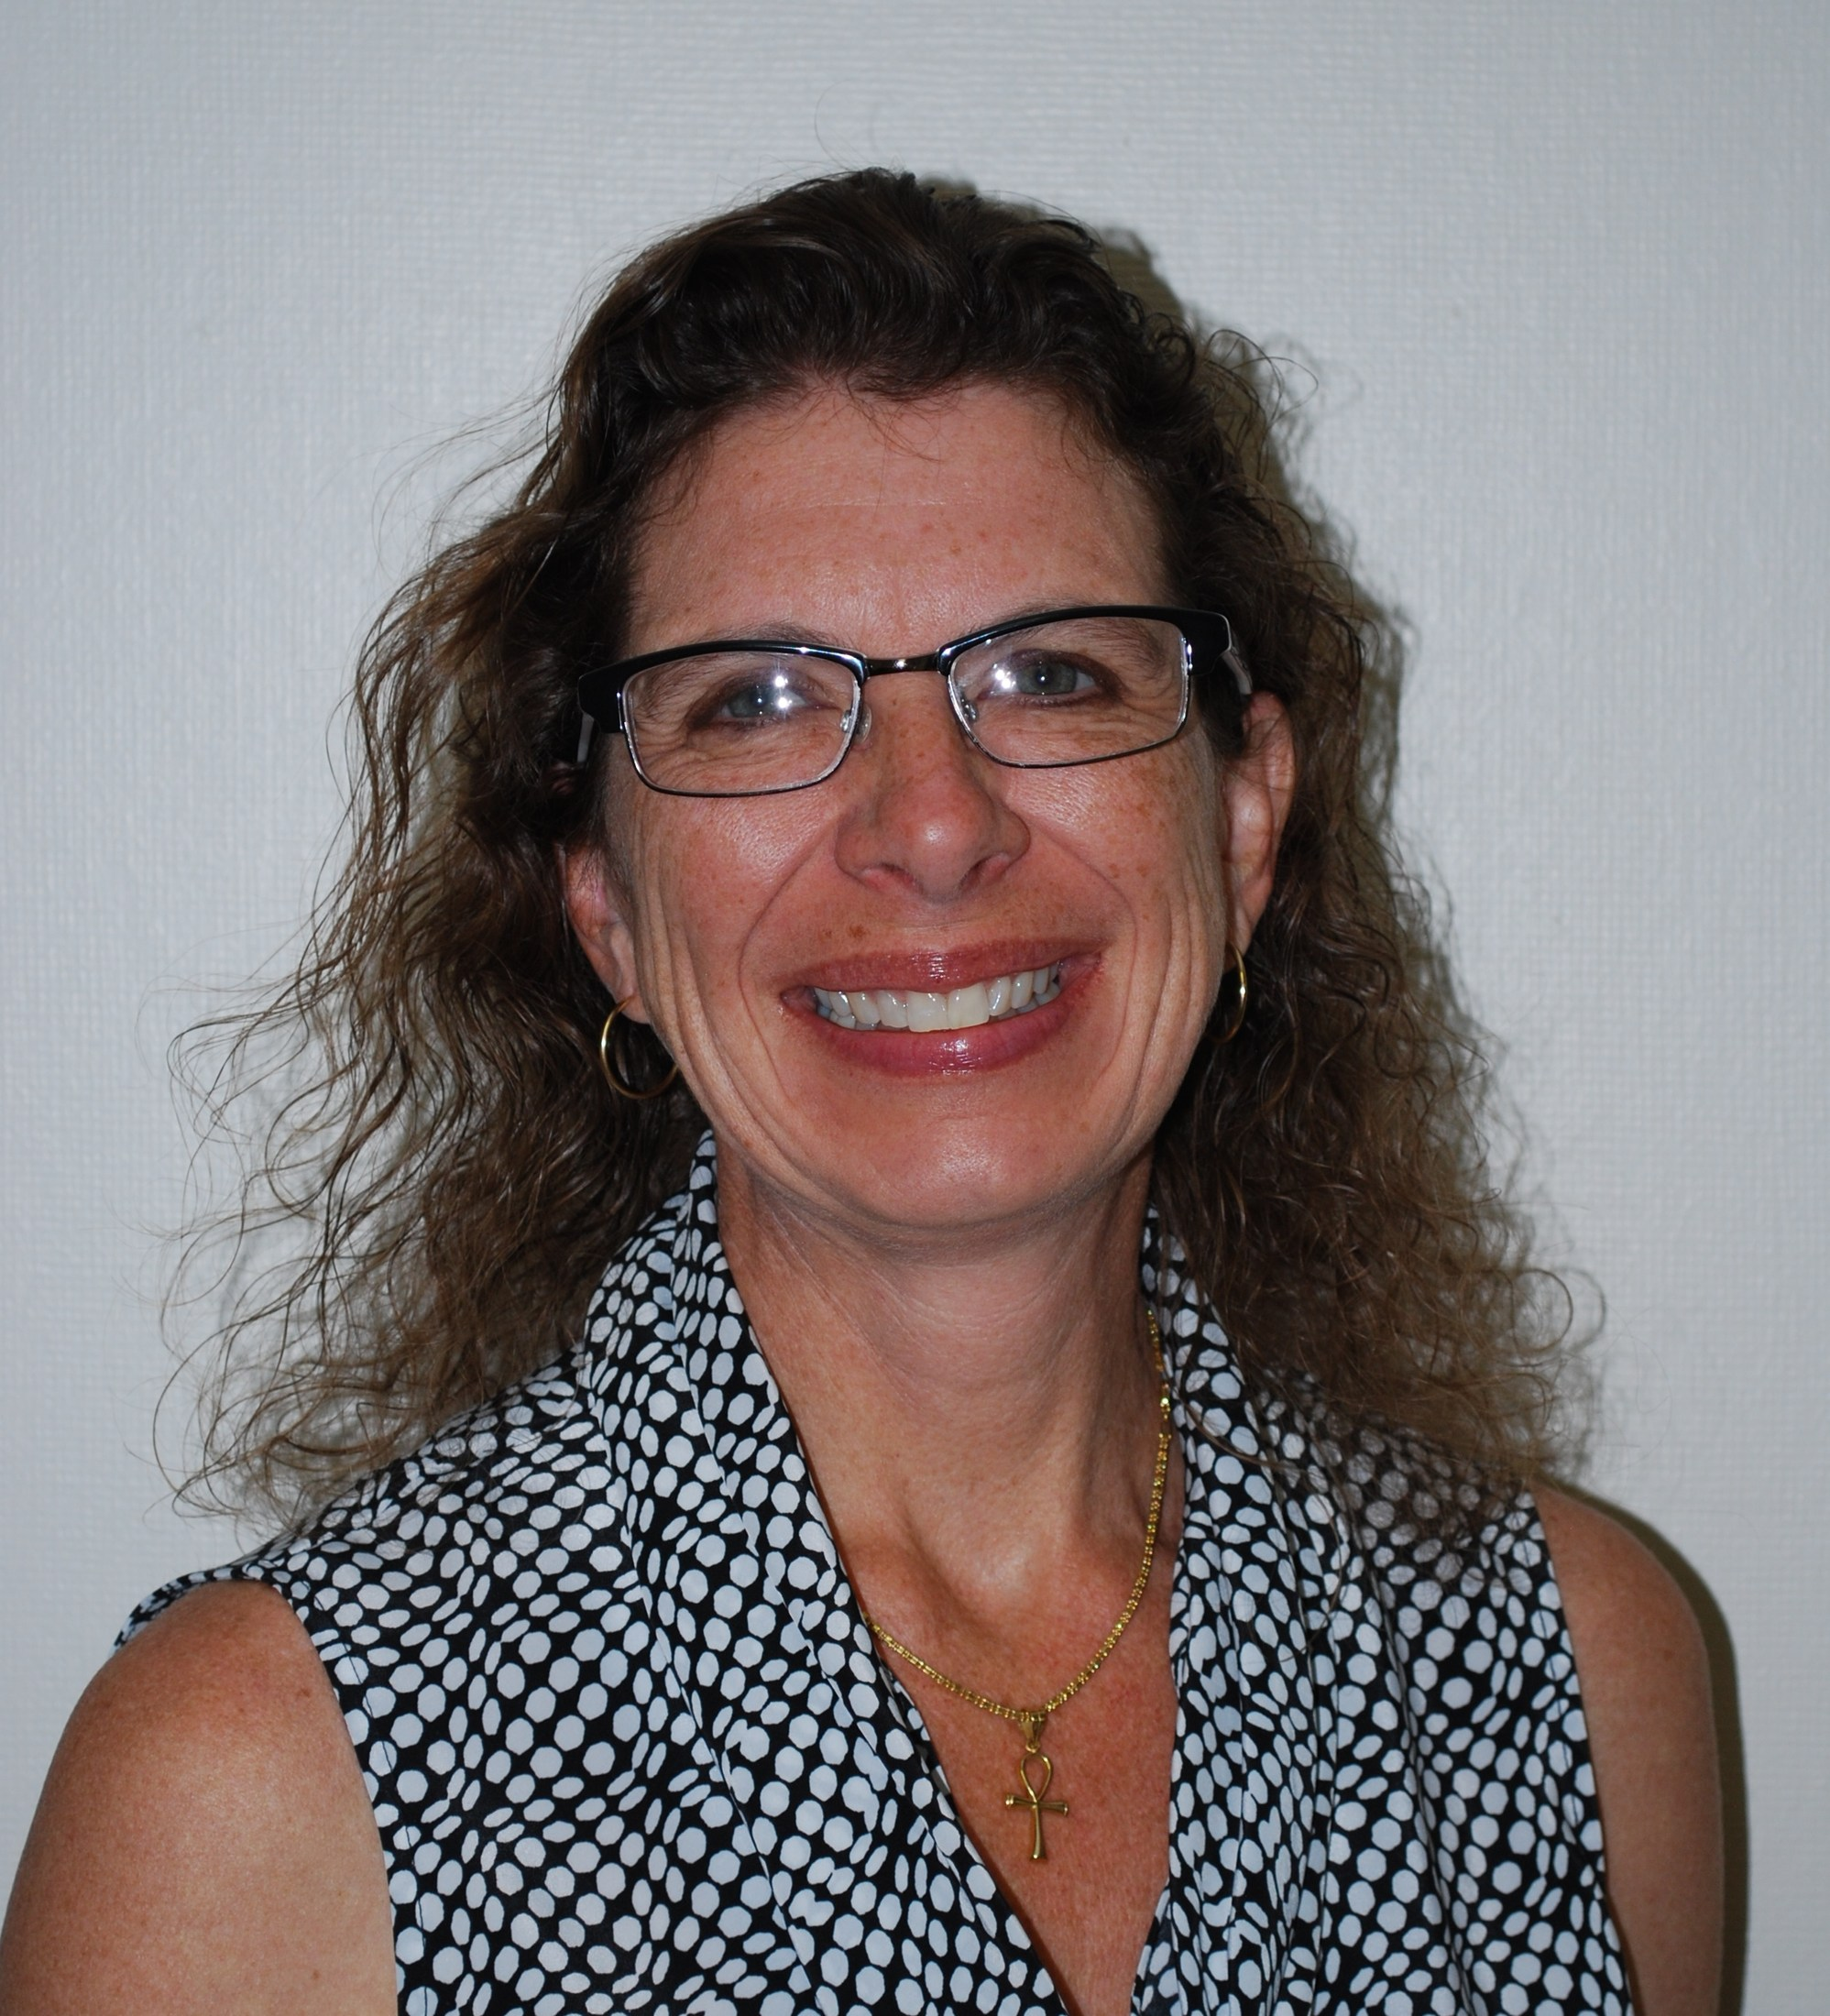 Image of Debi Caskey, Assistant Superintendent